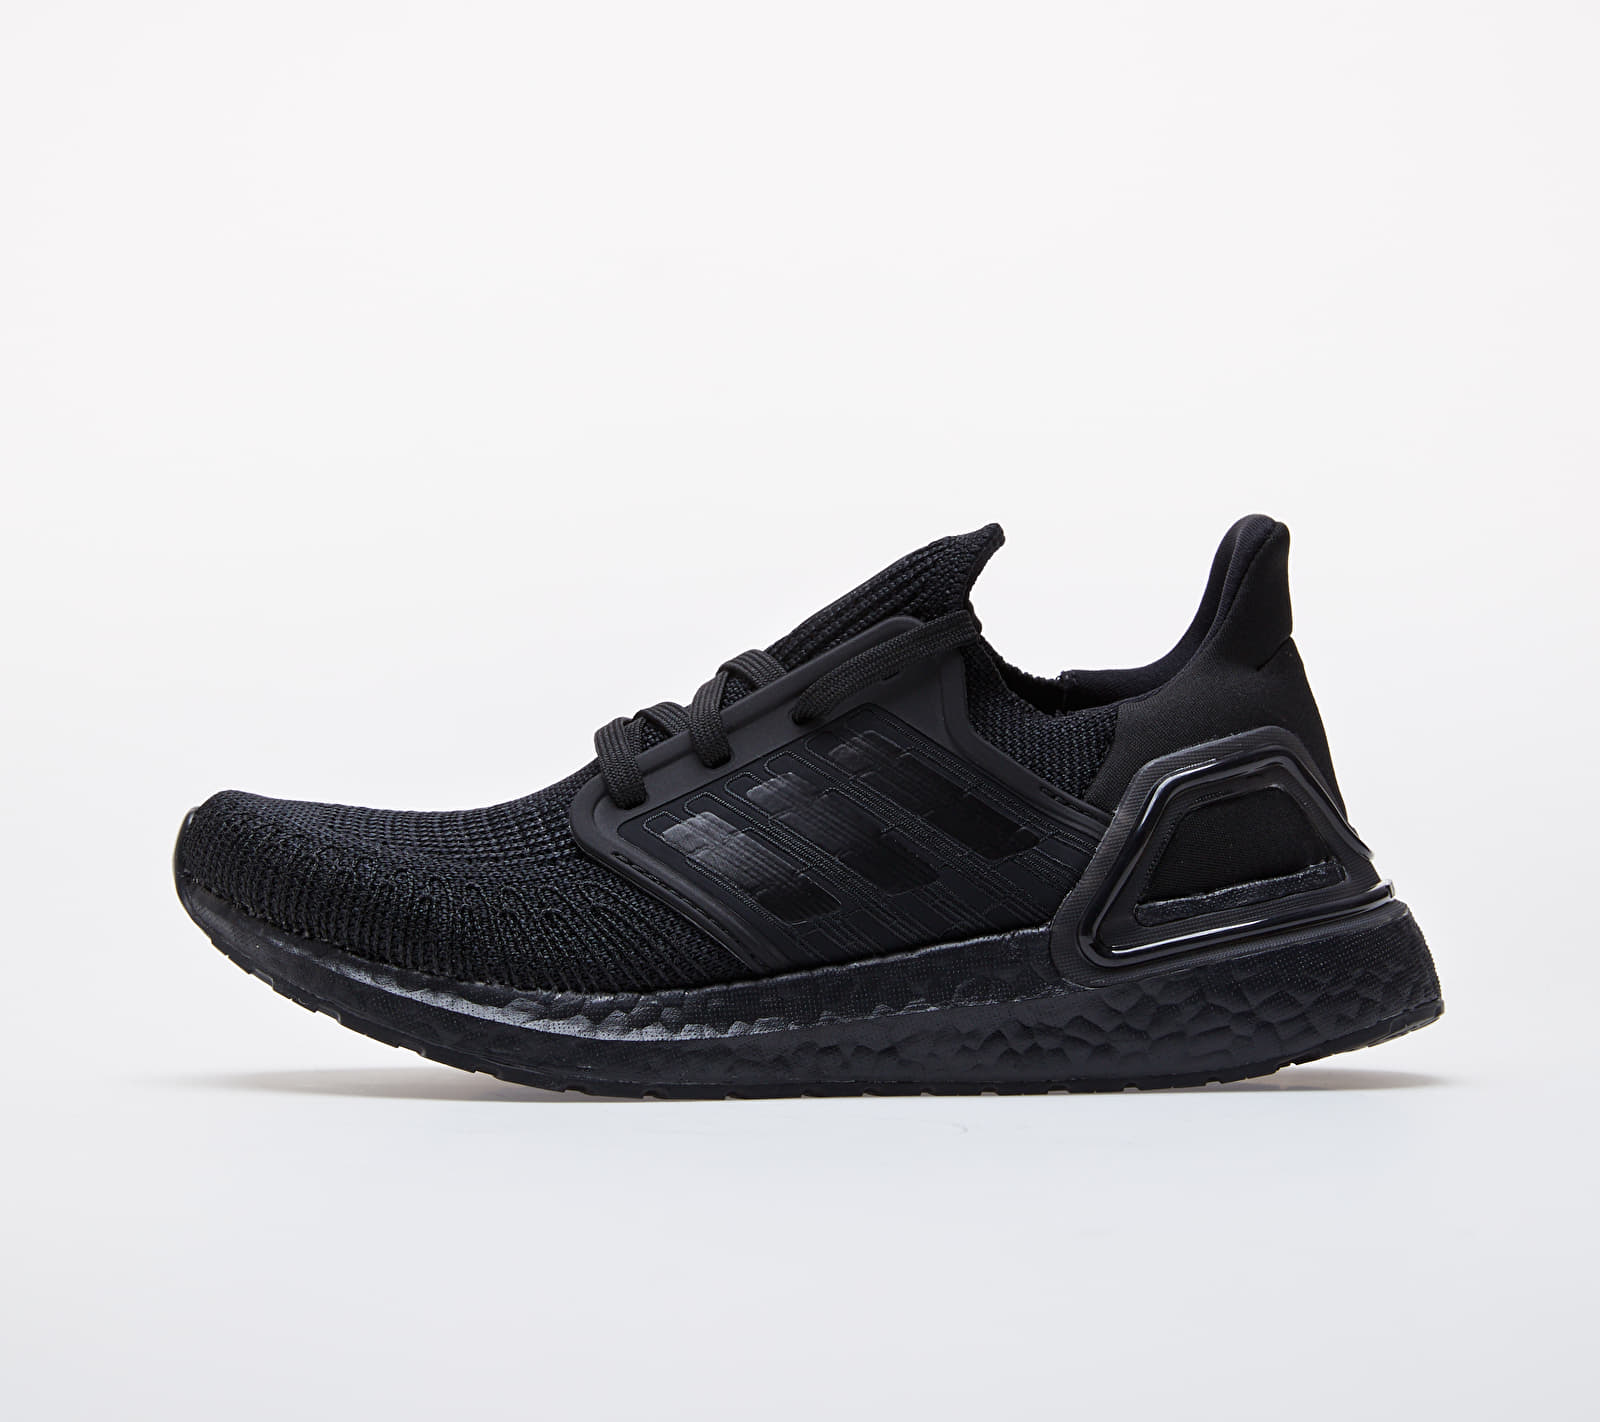 adidas UltraBOOST W Core Black/ Core Black/ Solar Red 1